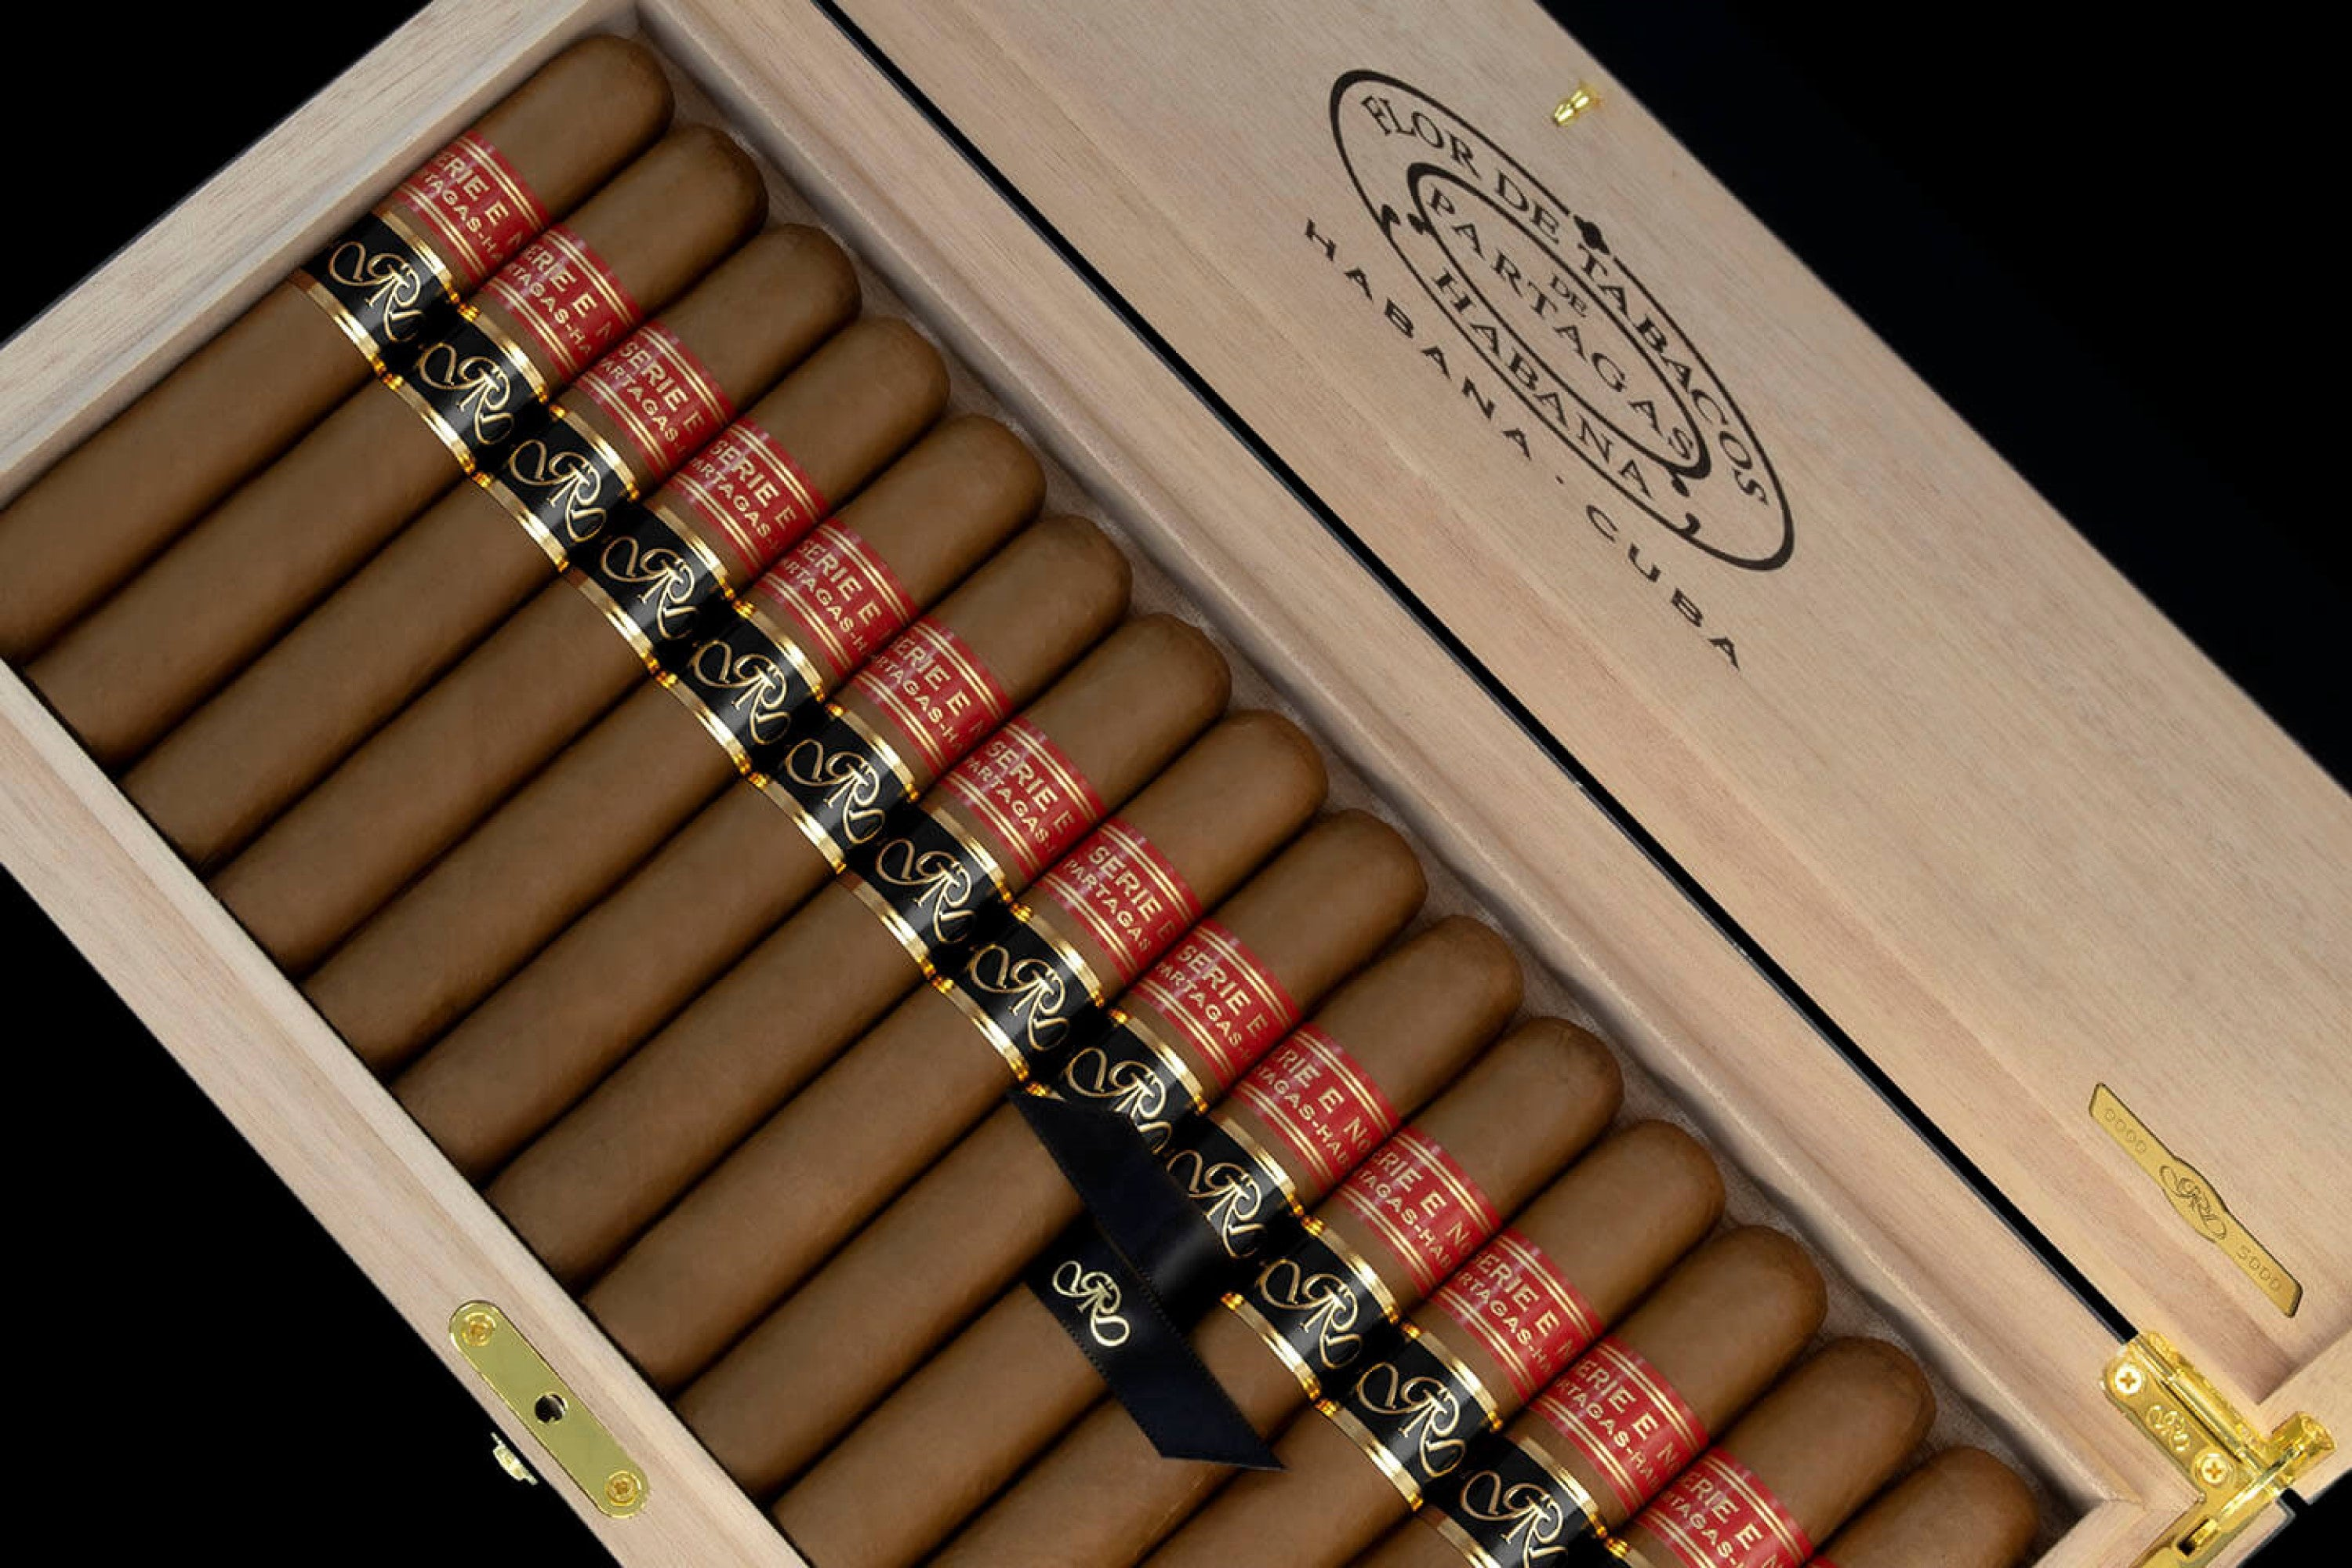 The Partagas Serie E No. 2 is the latest cigar to be granted a Gran Reserva.